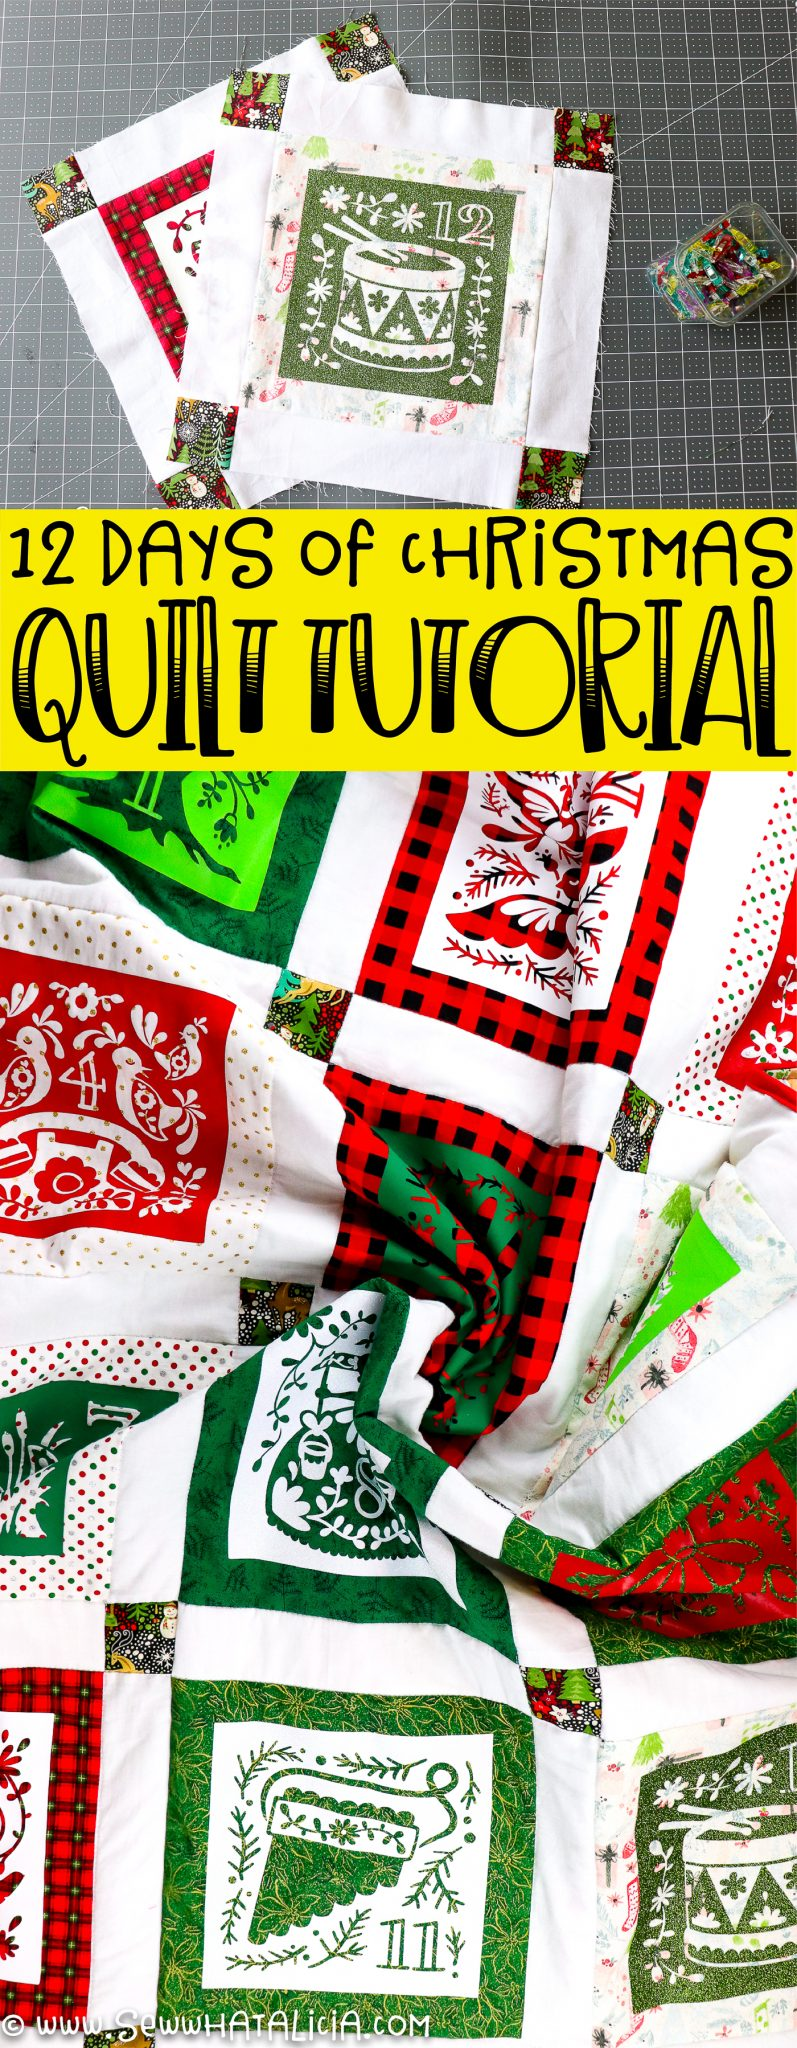 finished quilt with wording 12 days of christmas quilt tutorial